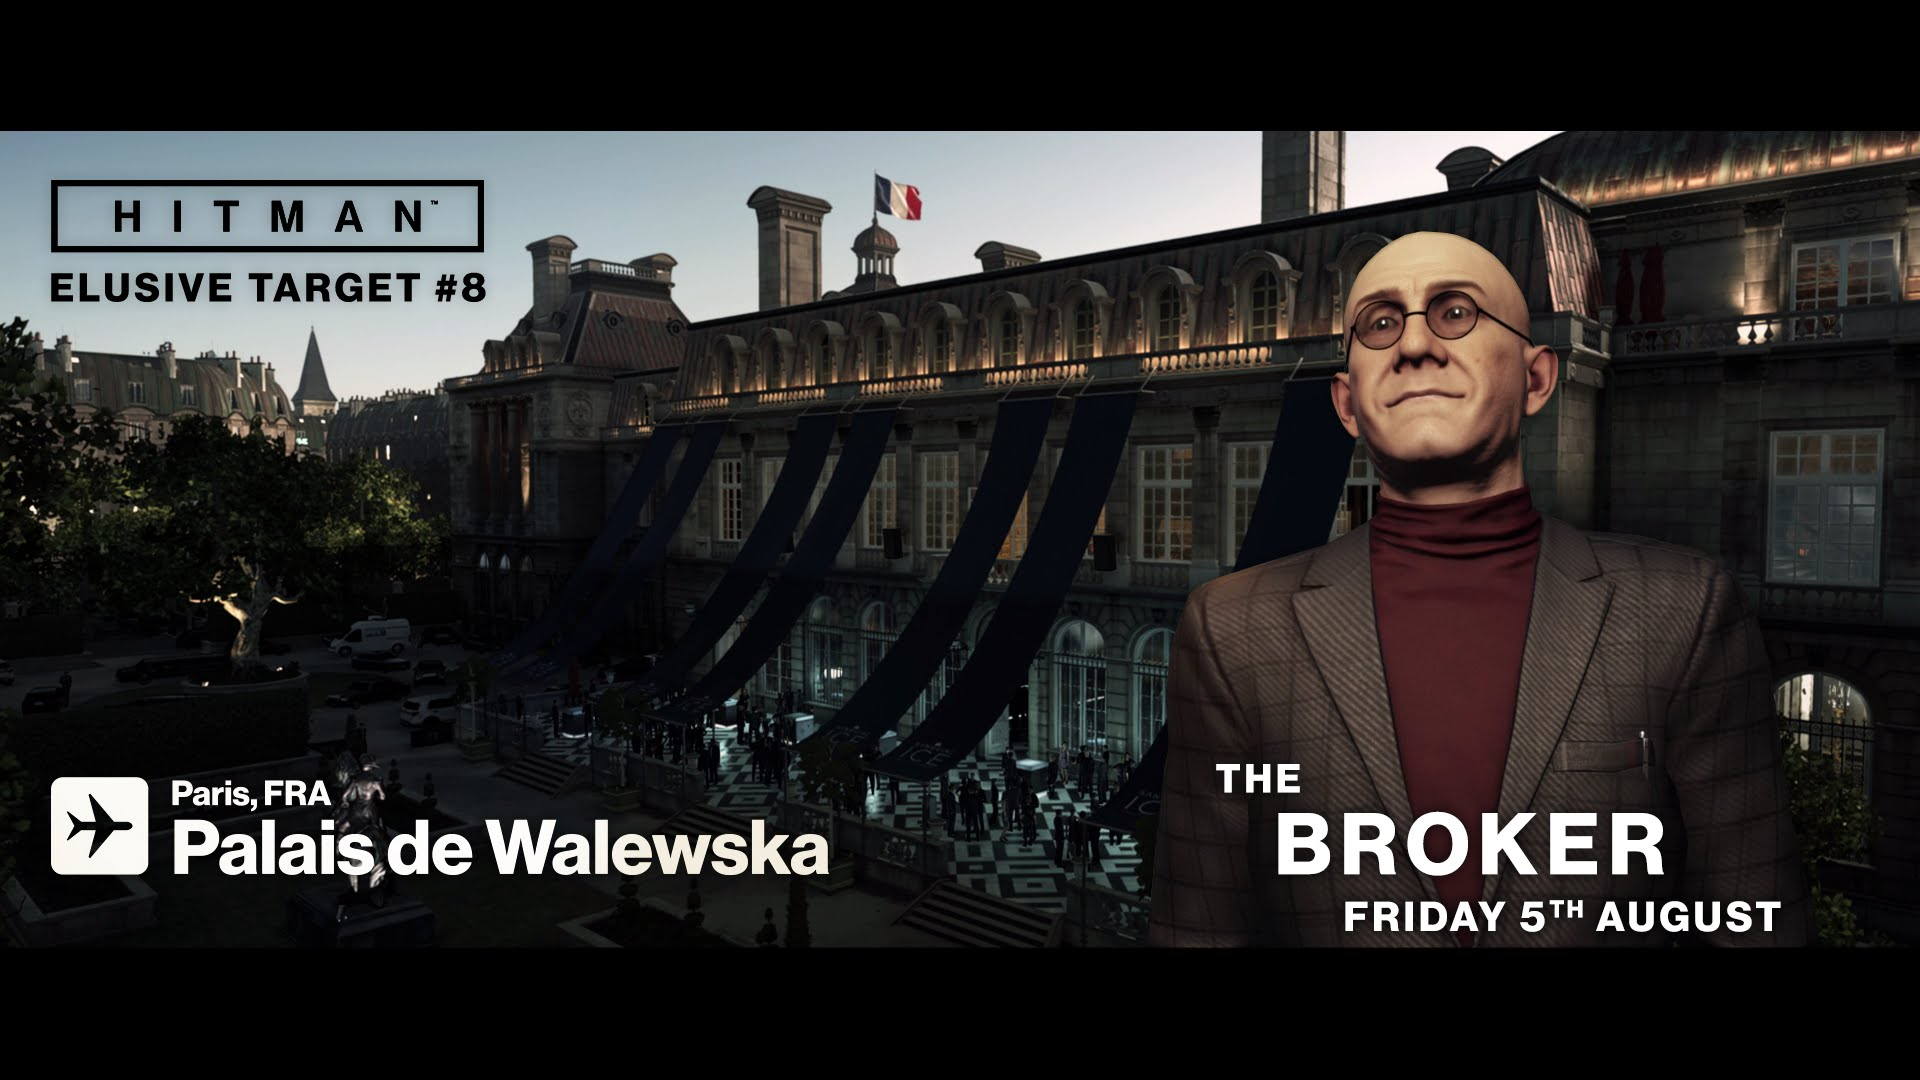 HITMAN Elusive Target #8 The Broker